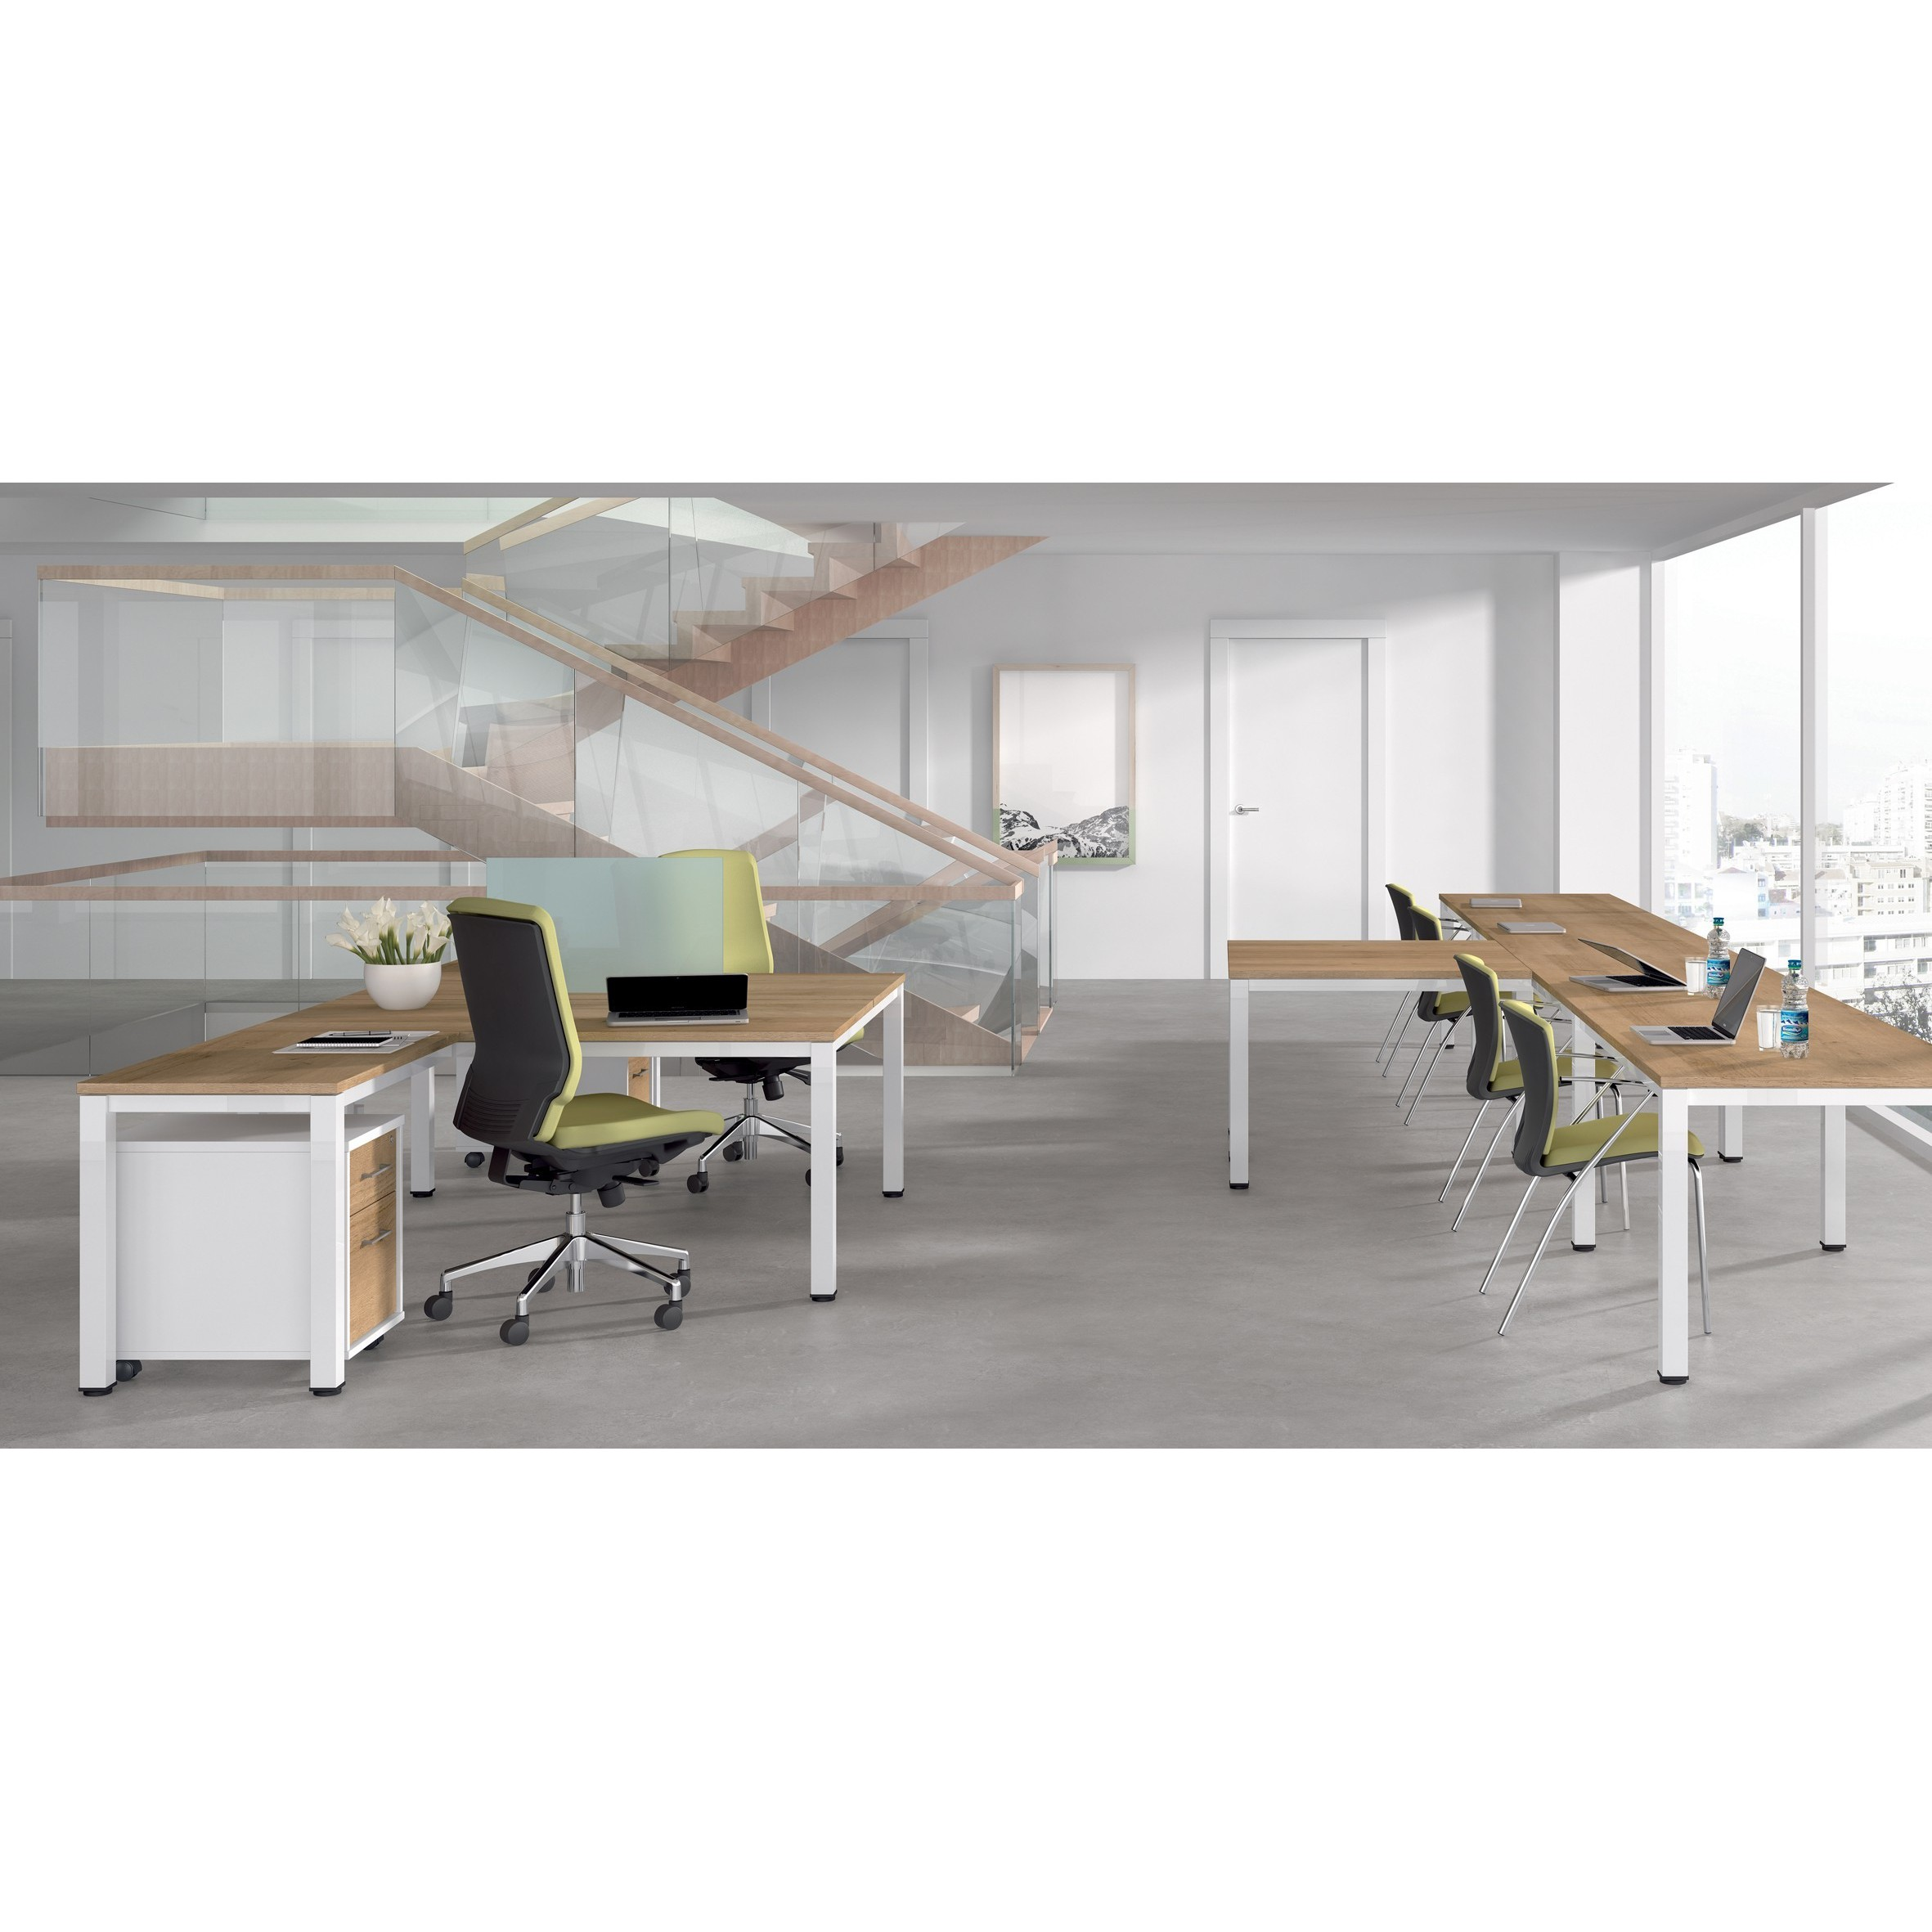 TABLE OFFICE 'S EXECUTIVE SERIES 160X80 WHITE/BEECH